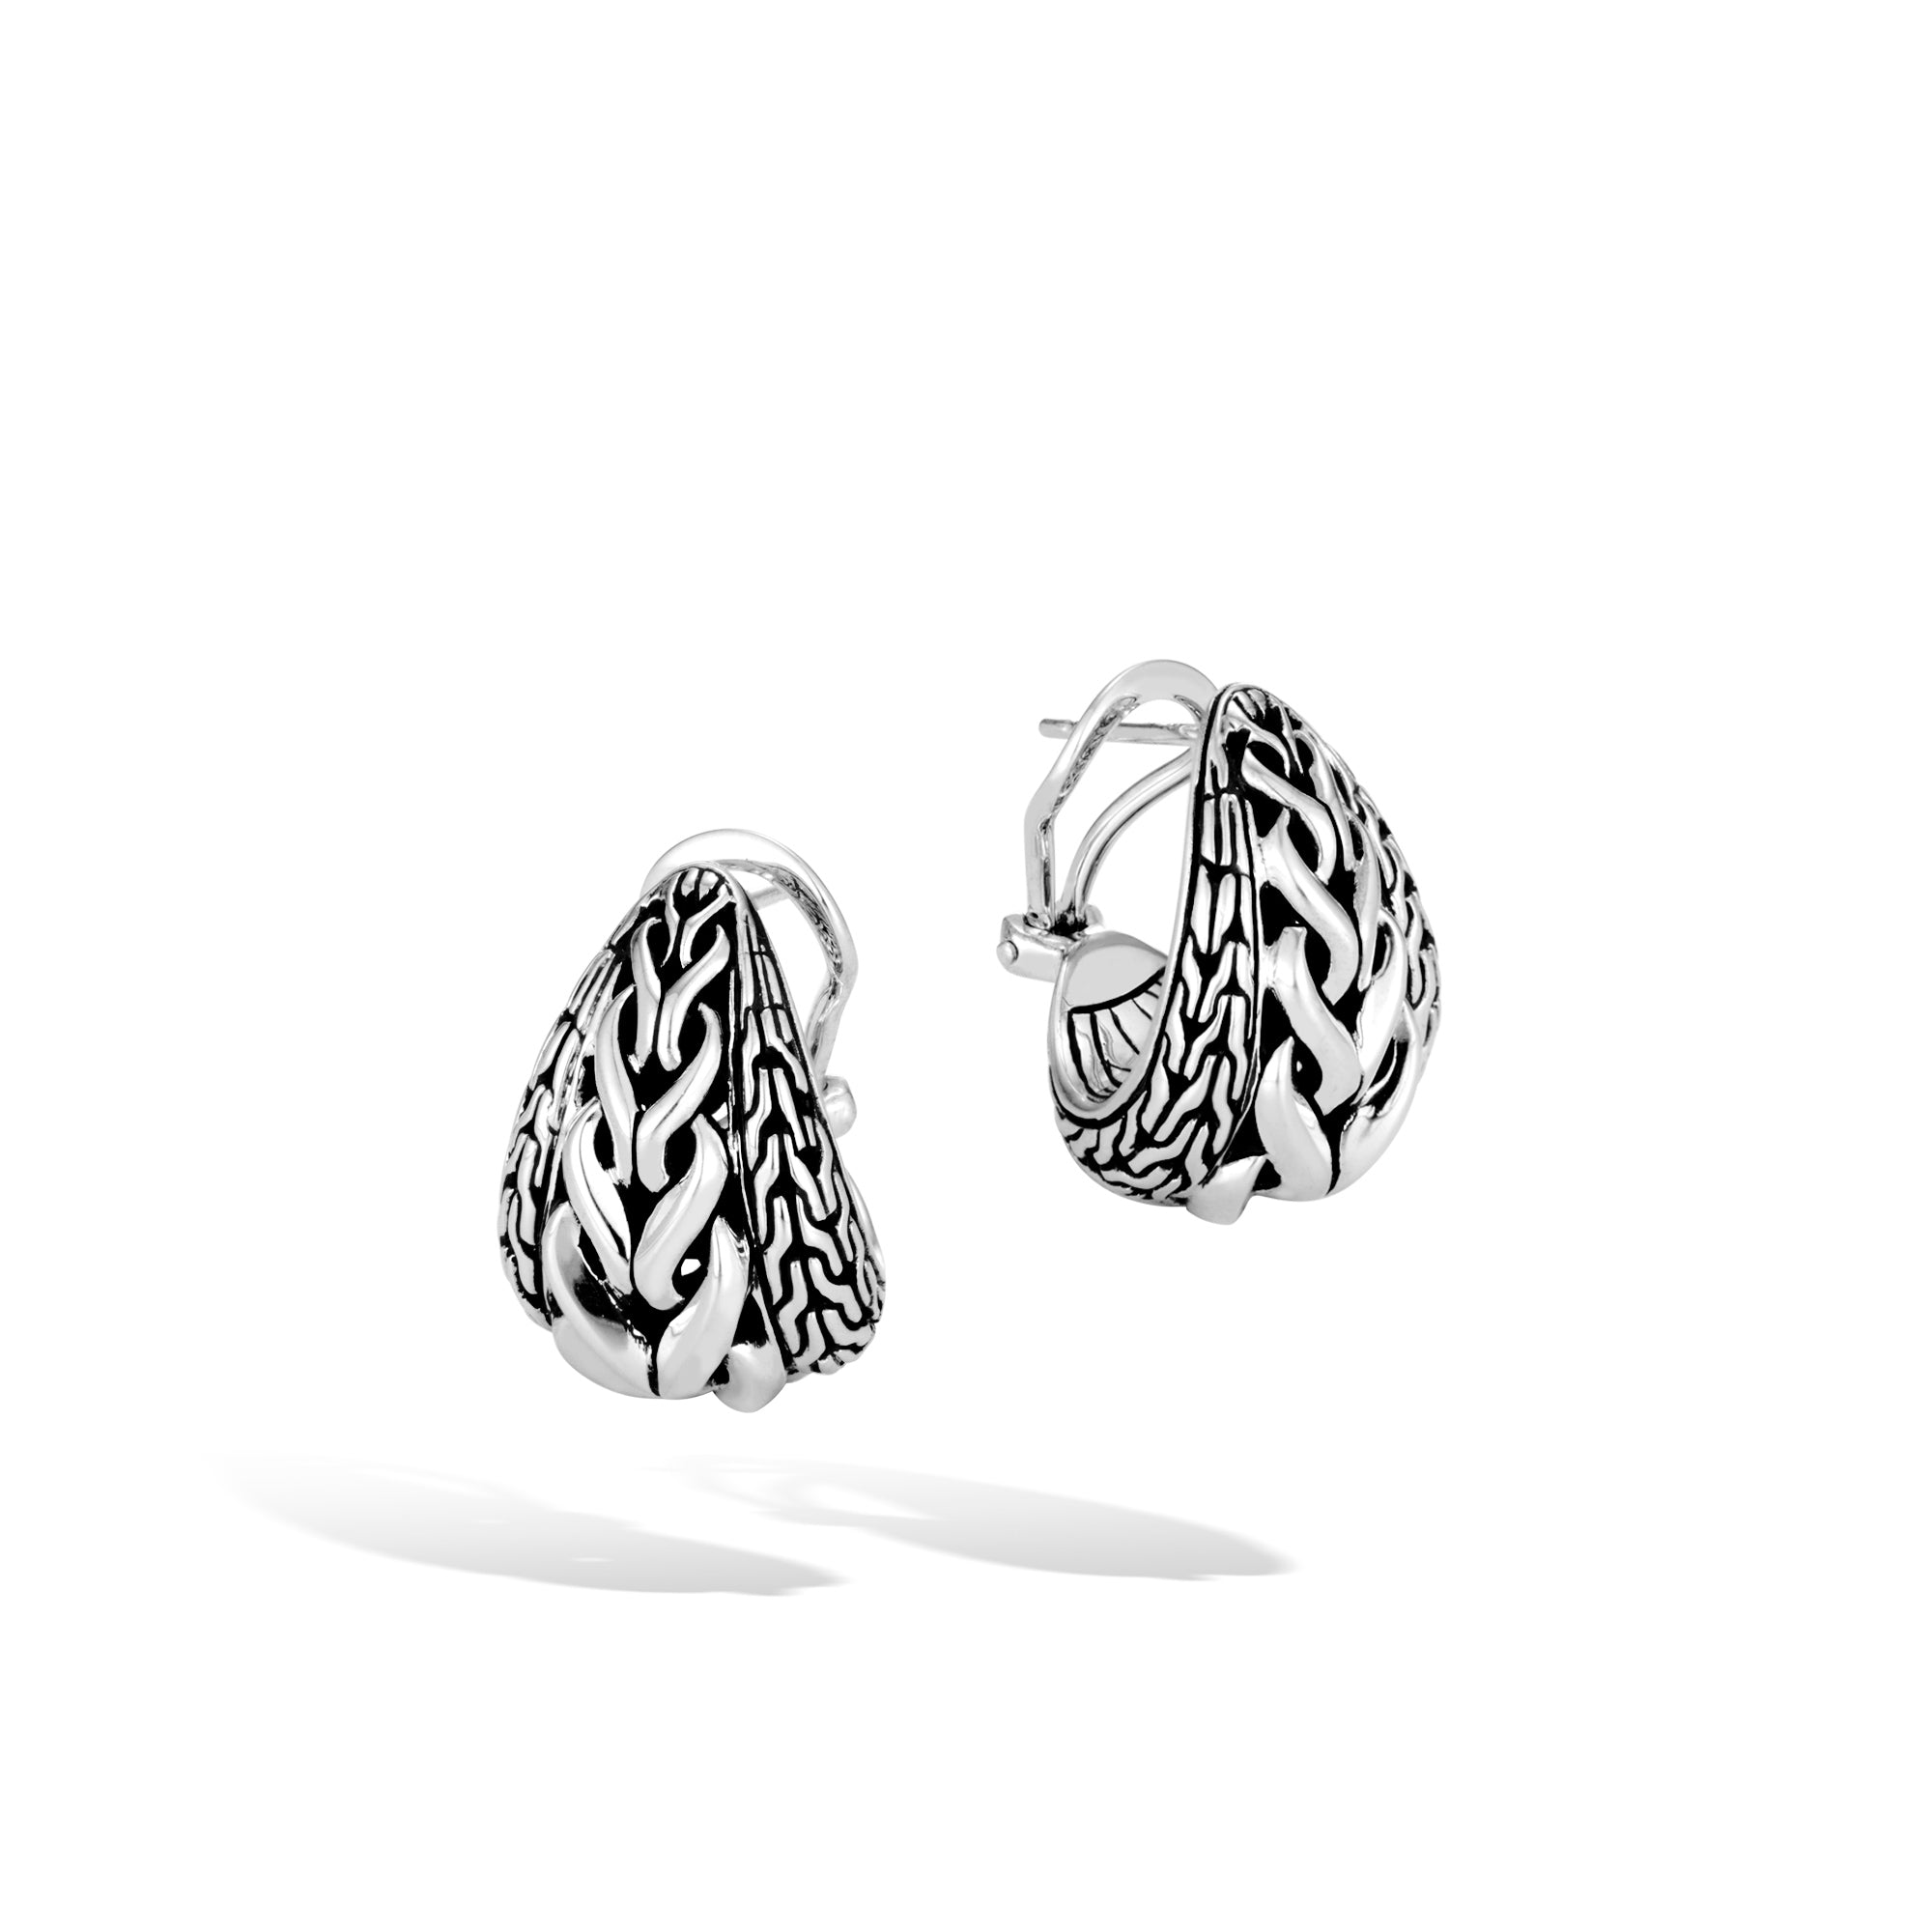 John Hardy Asli Classic Chain Link Earrings